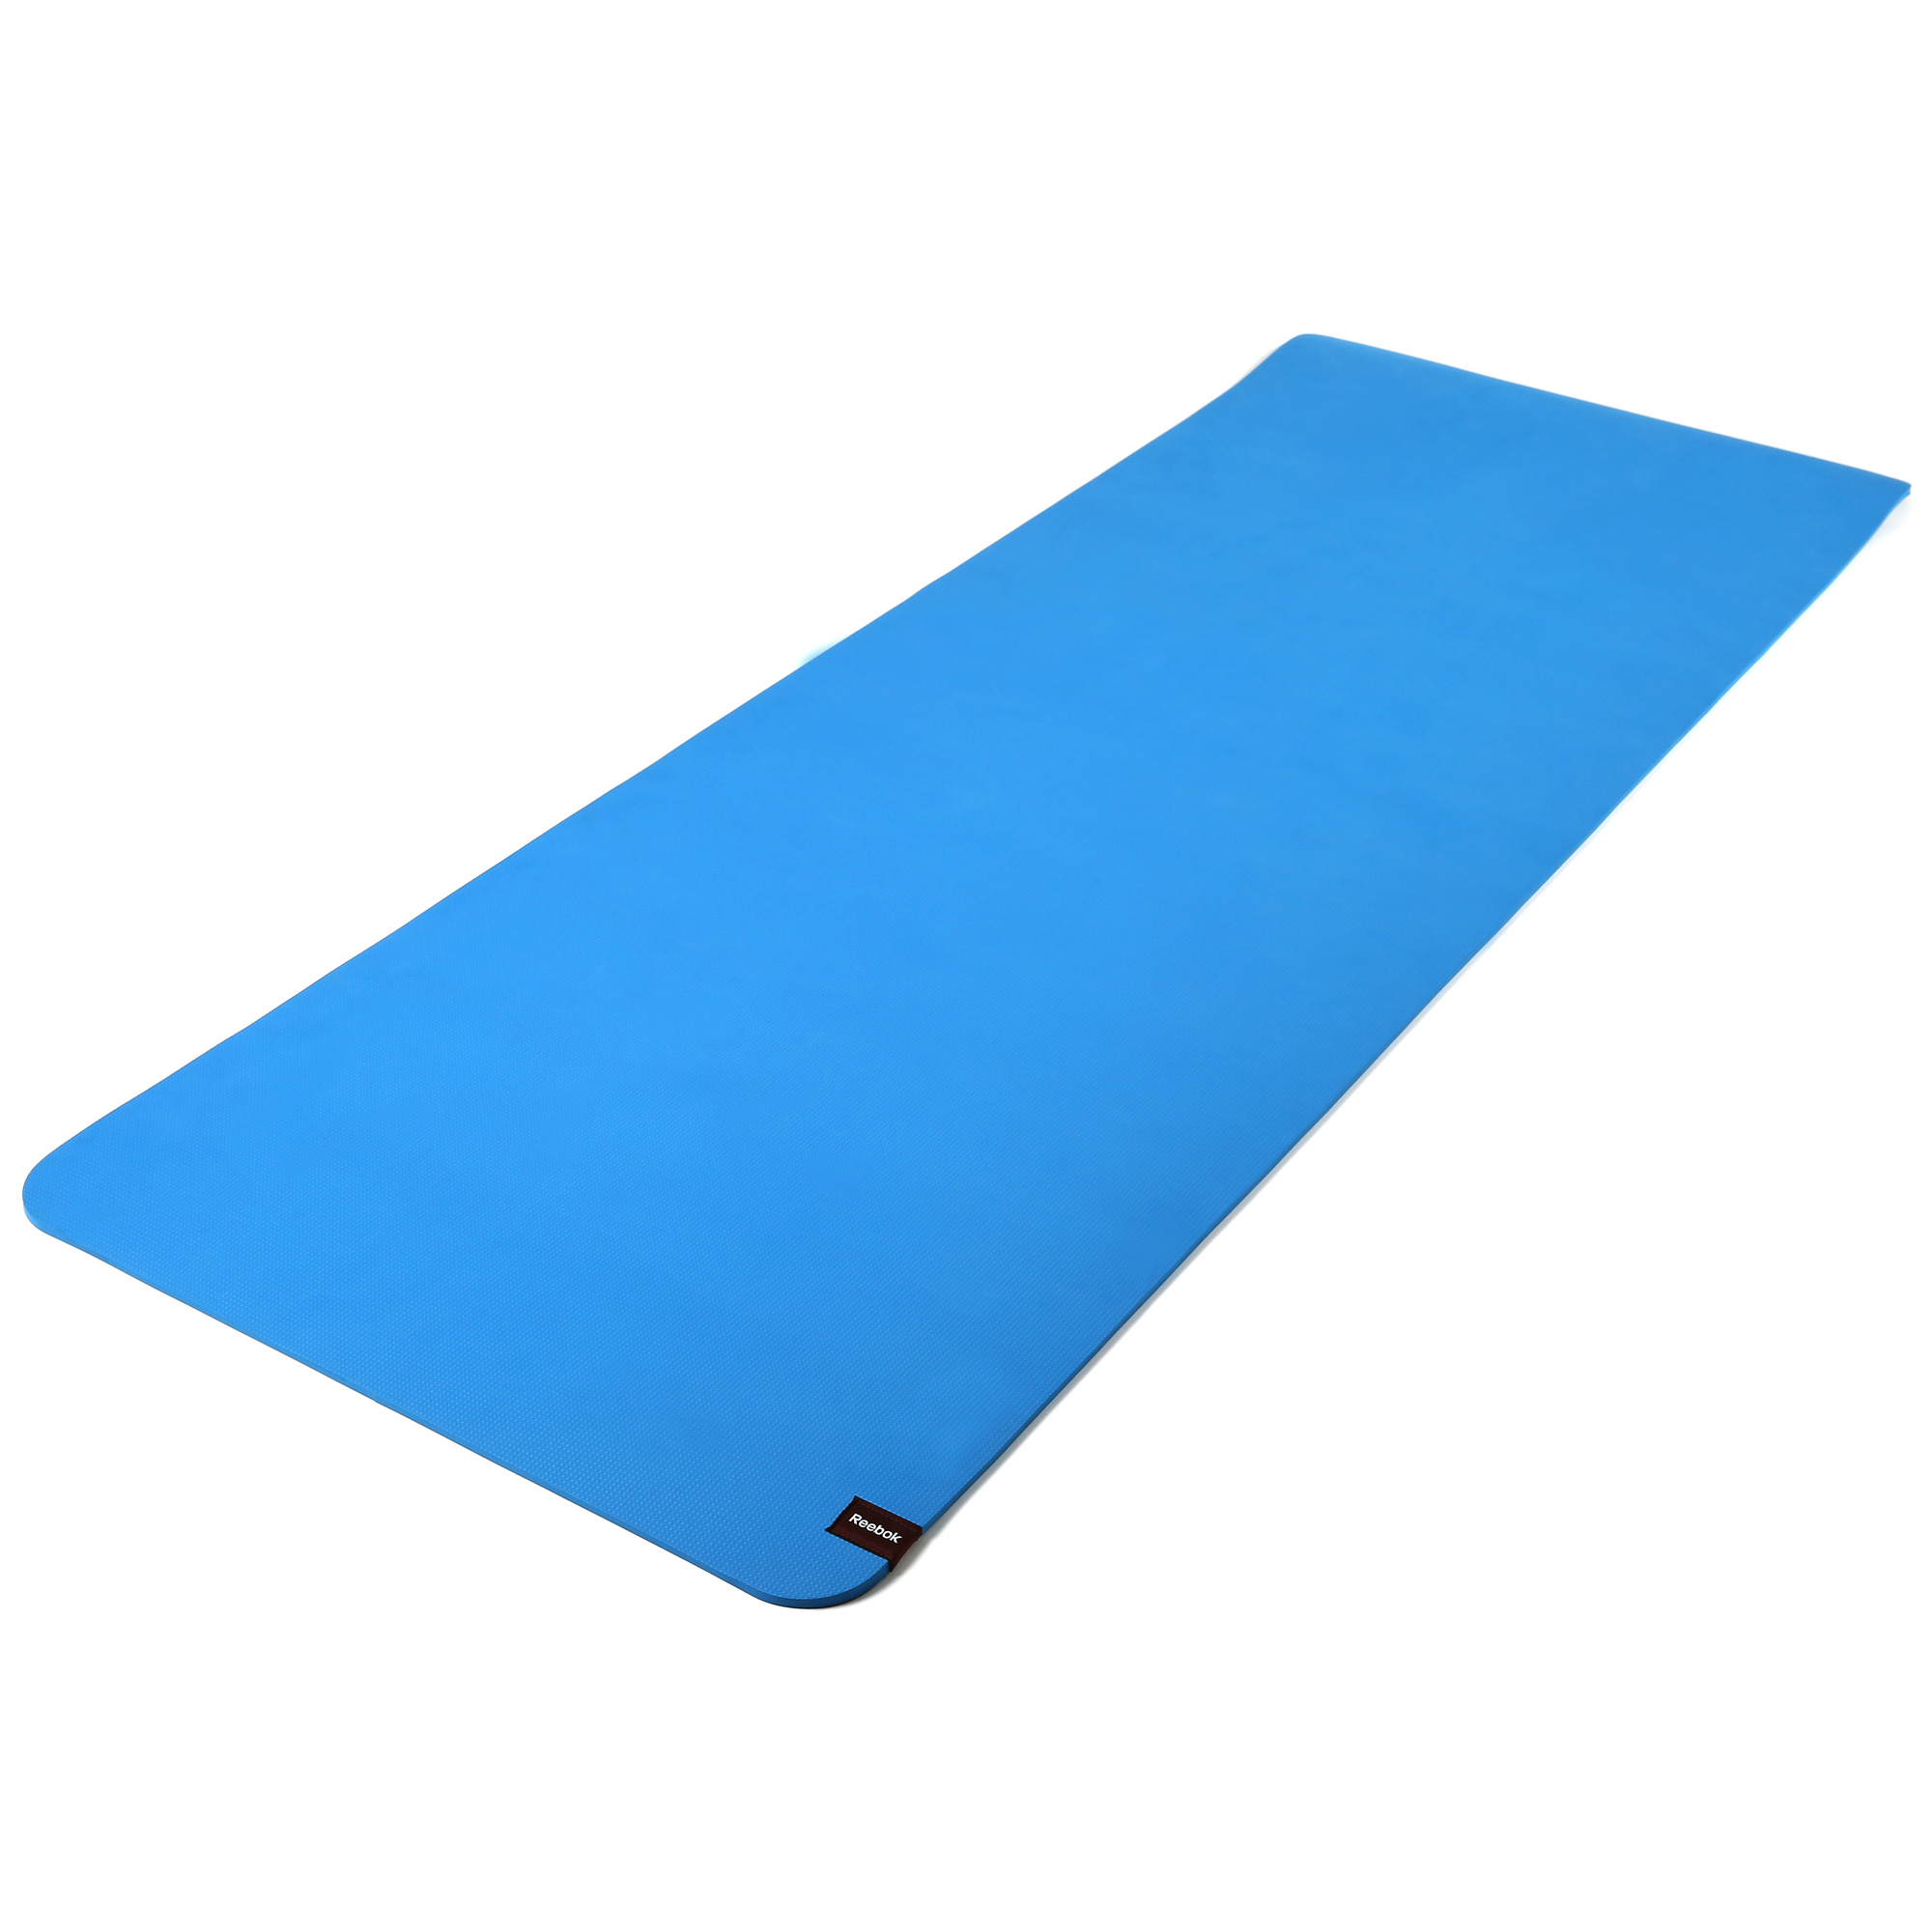 Reebok 6mm Double Sided Yoga Mat